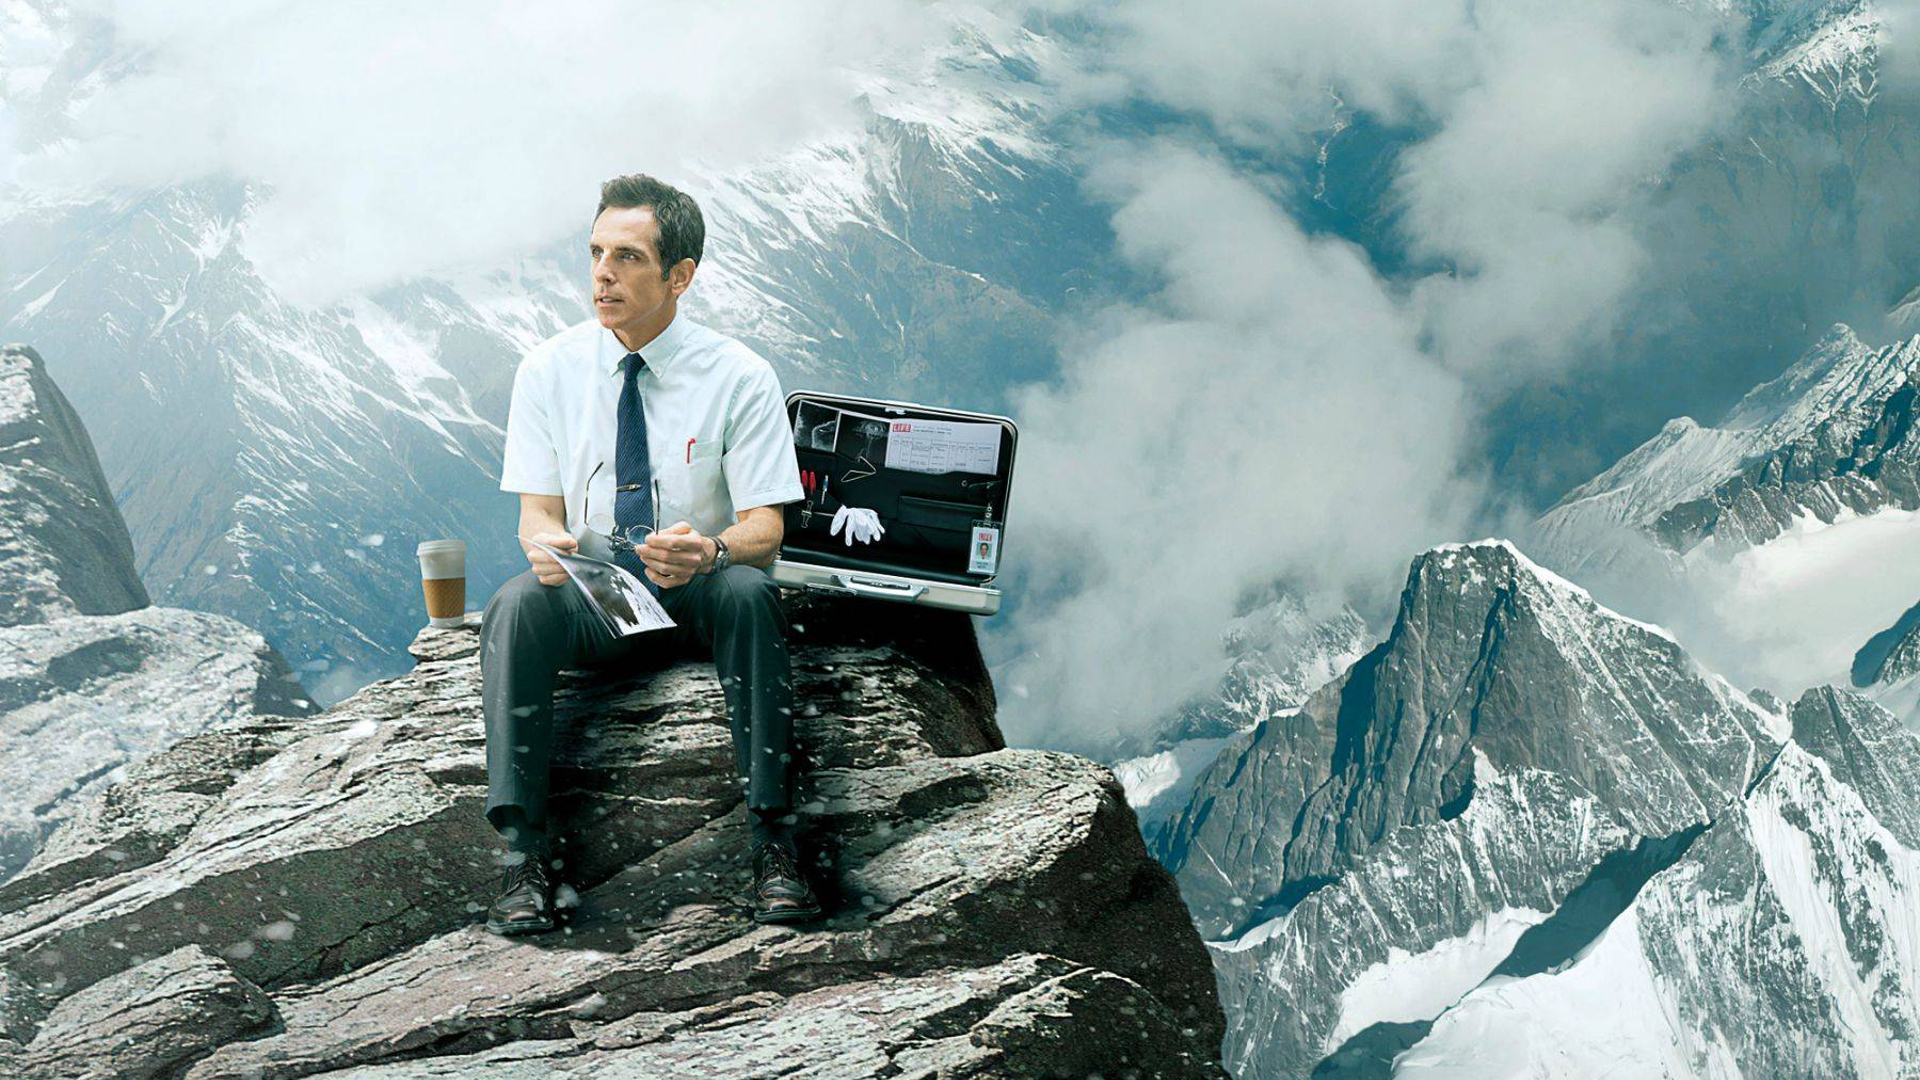 walter mitty wallpaper - photo #1